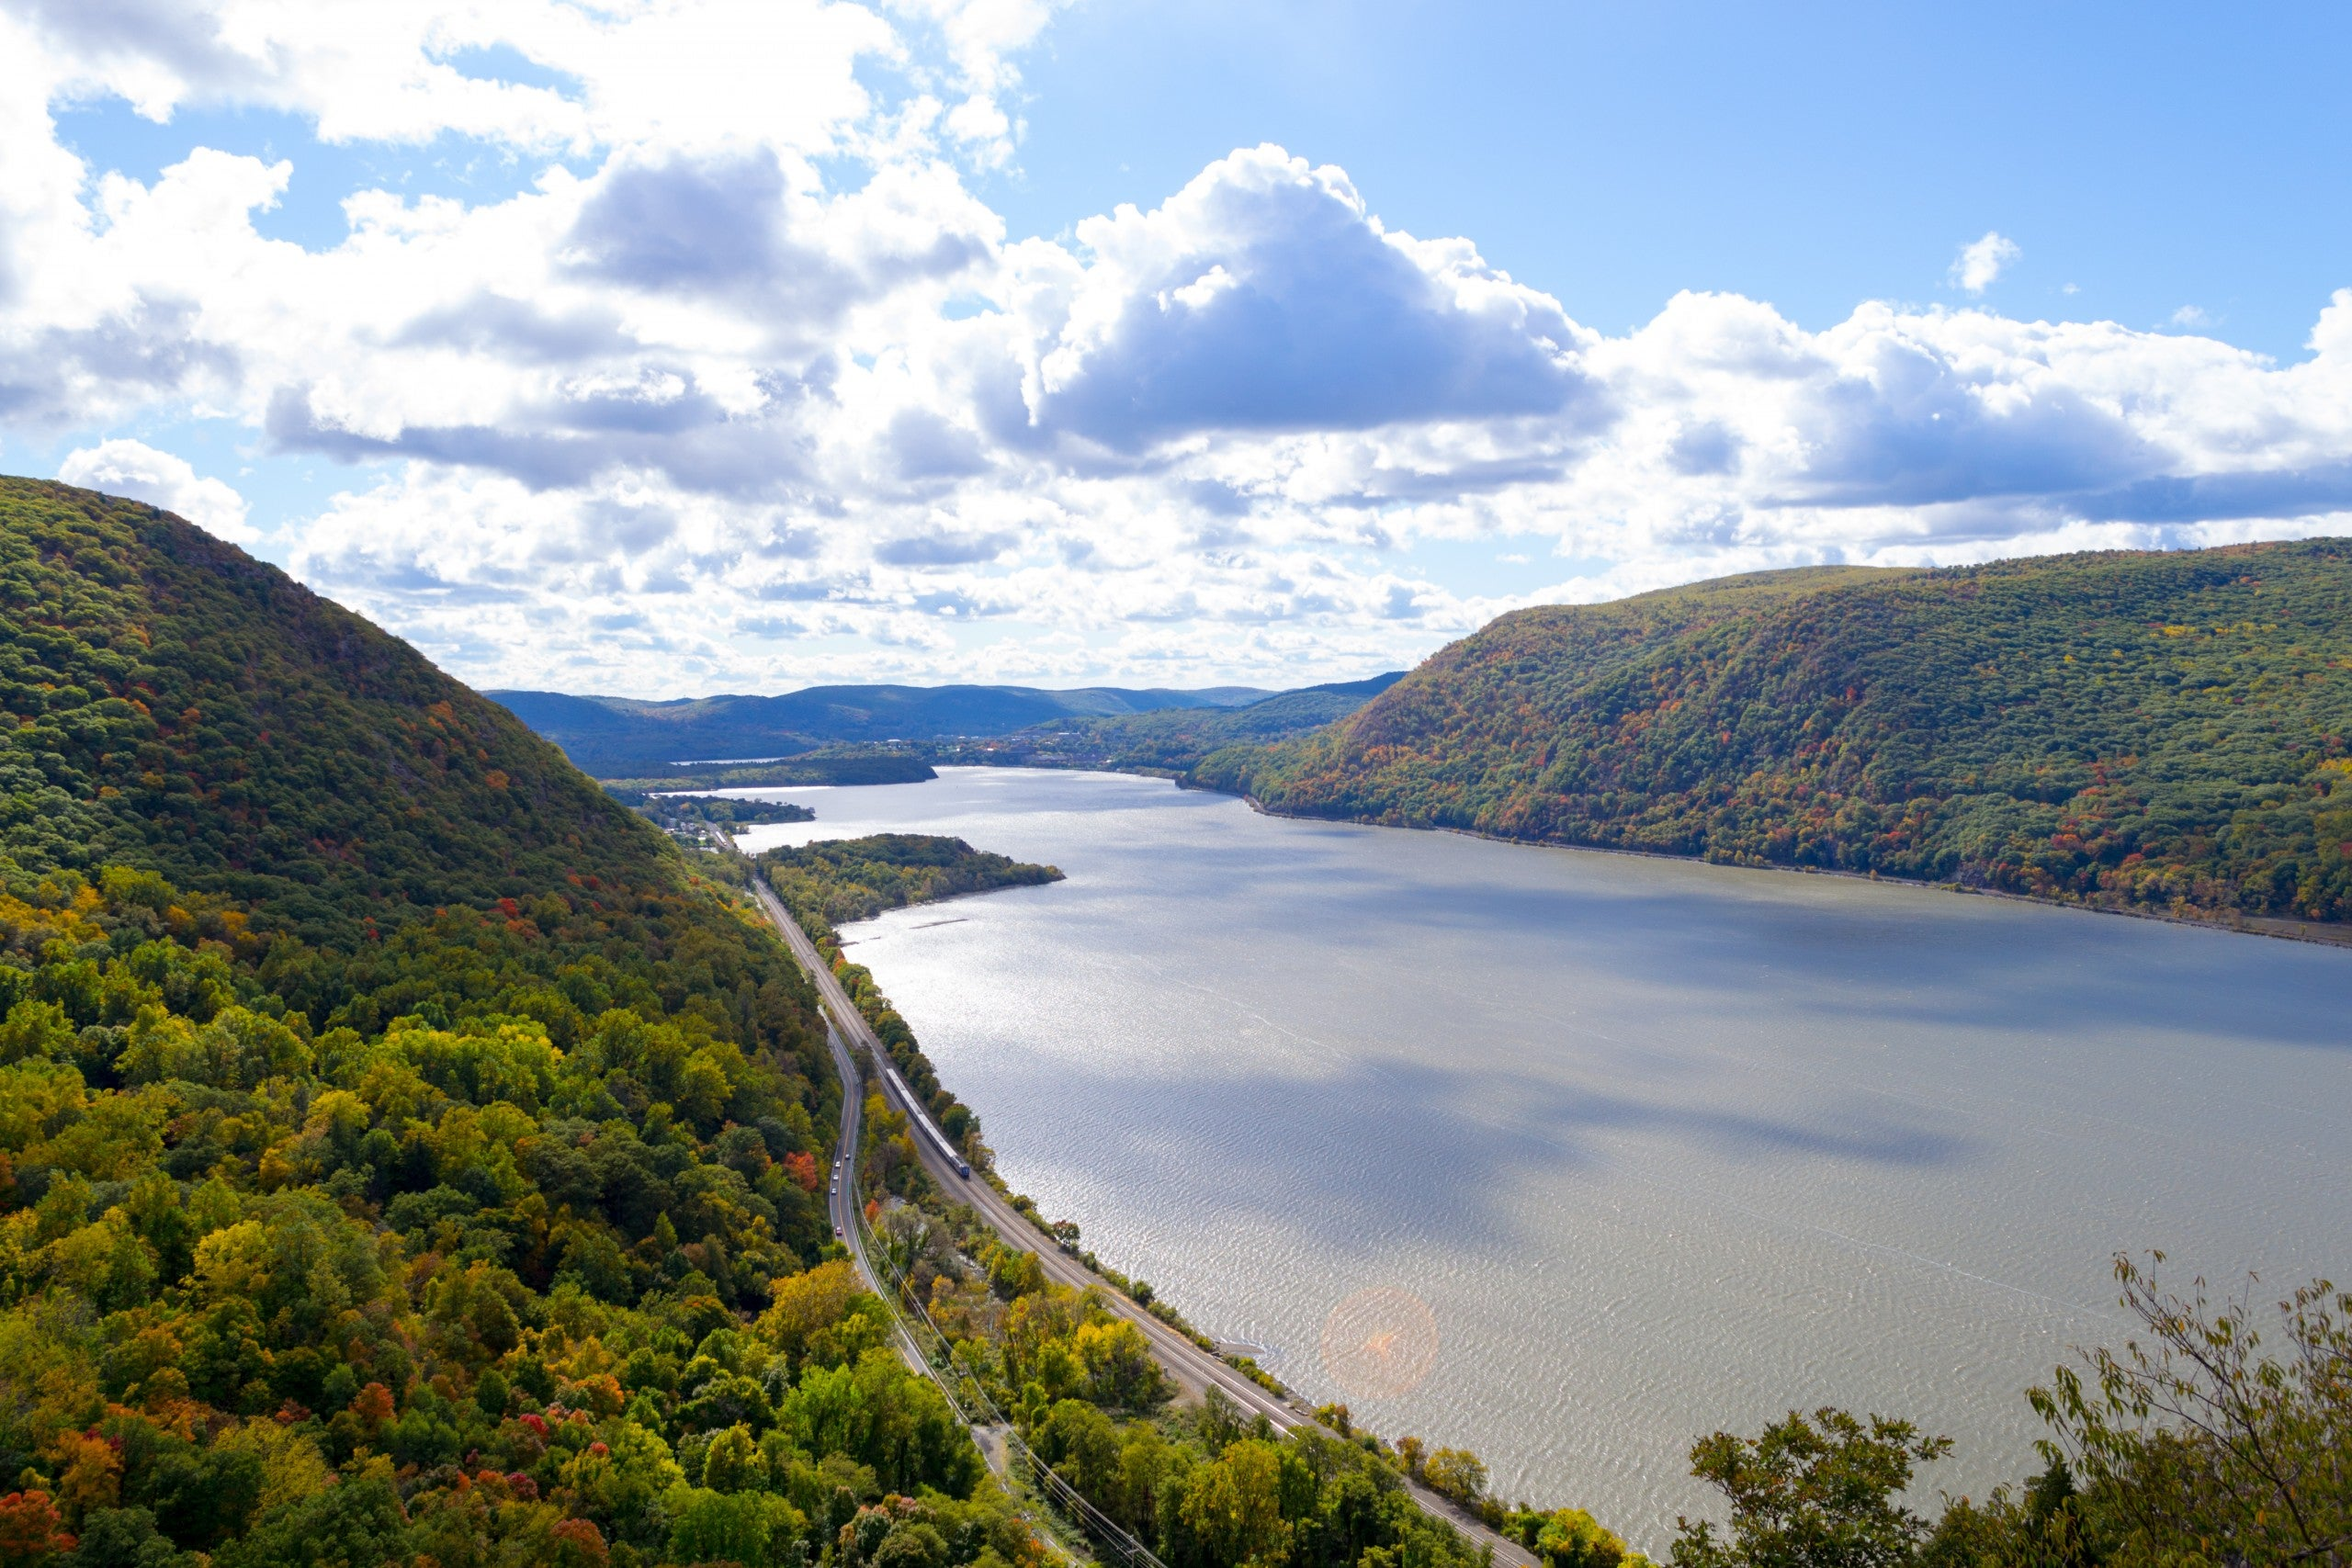 Viewpoint over a river at breakneck ridge.